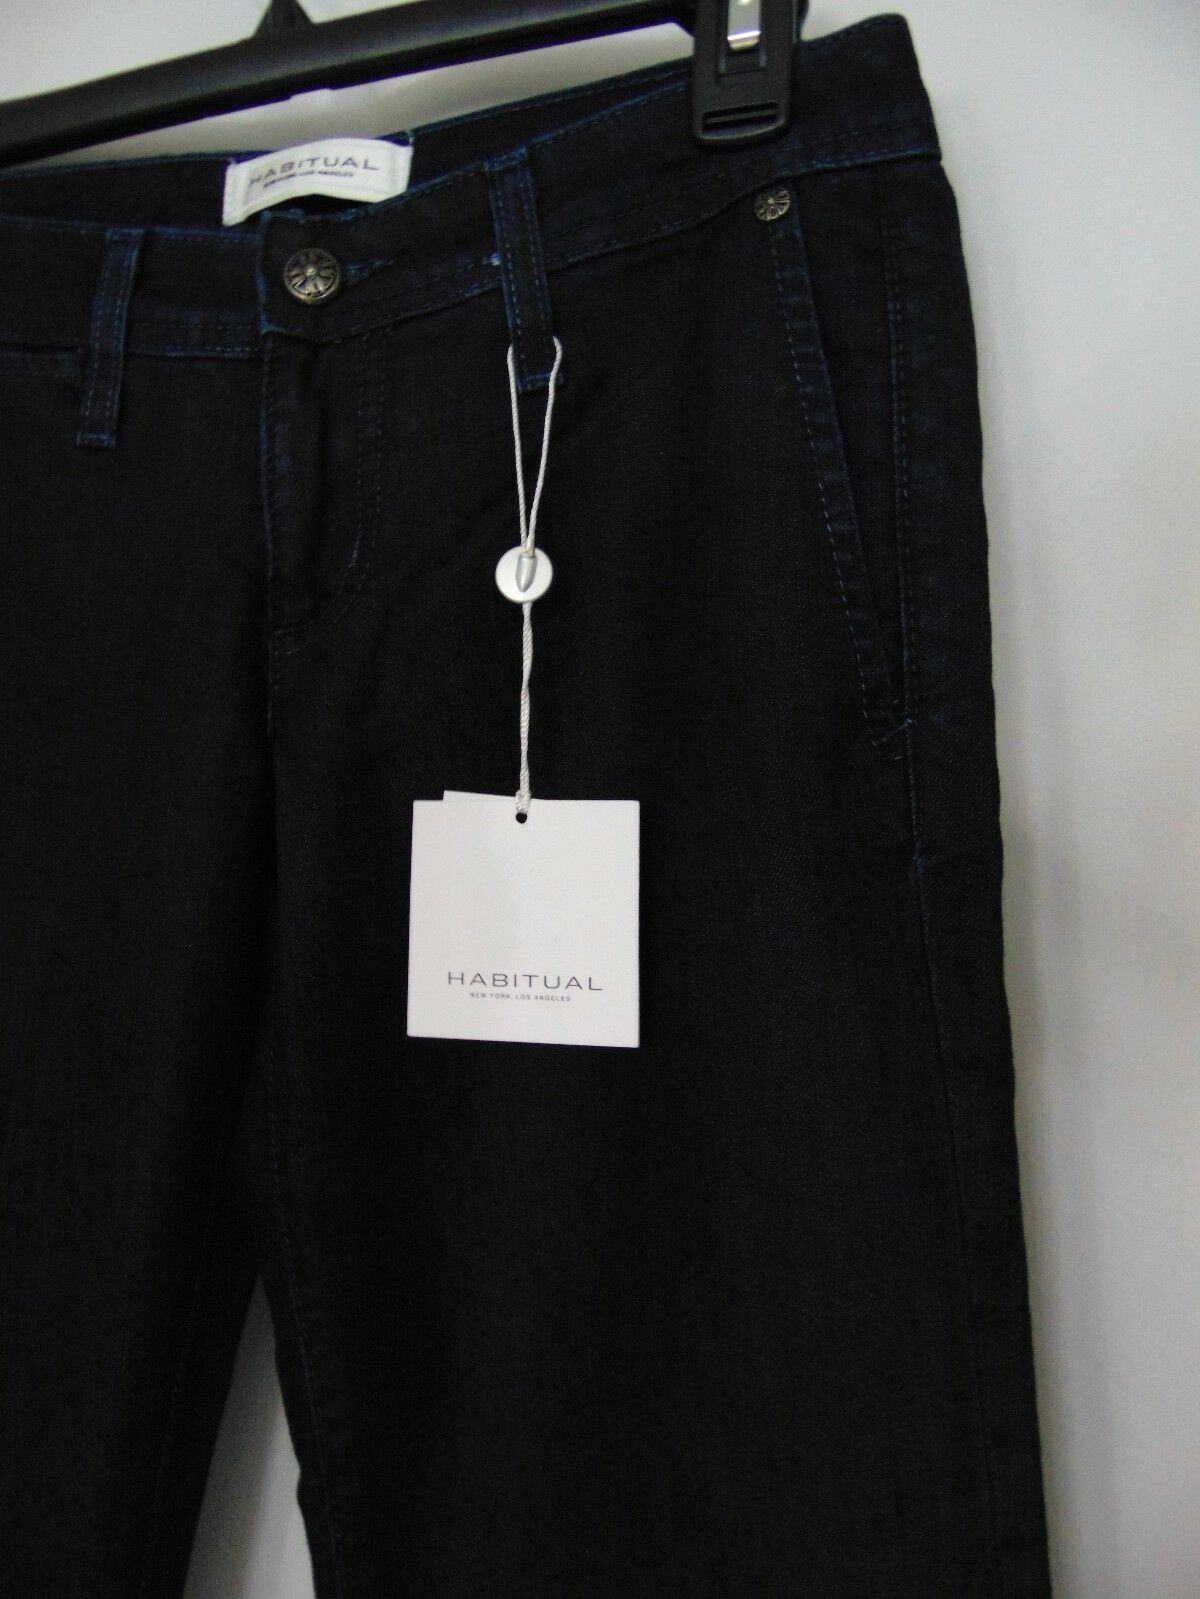 Habitual Eventide Dark bluee Jeans Size 25 New NWT